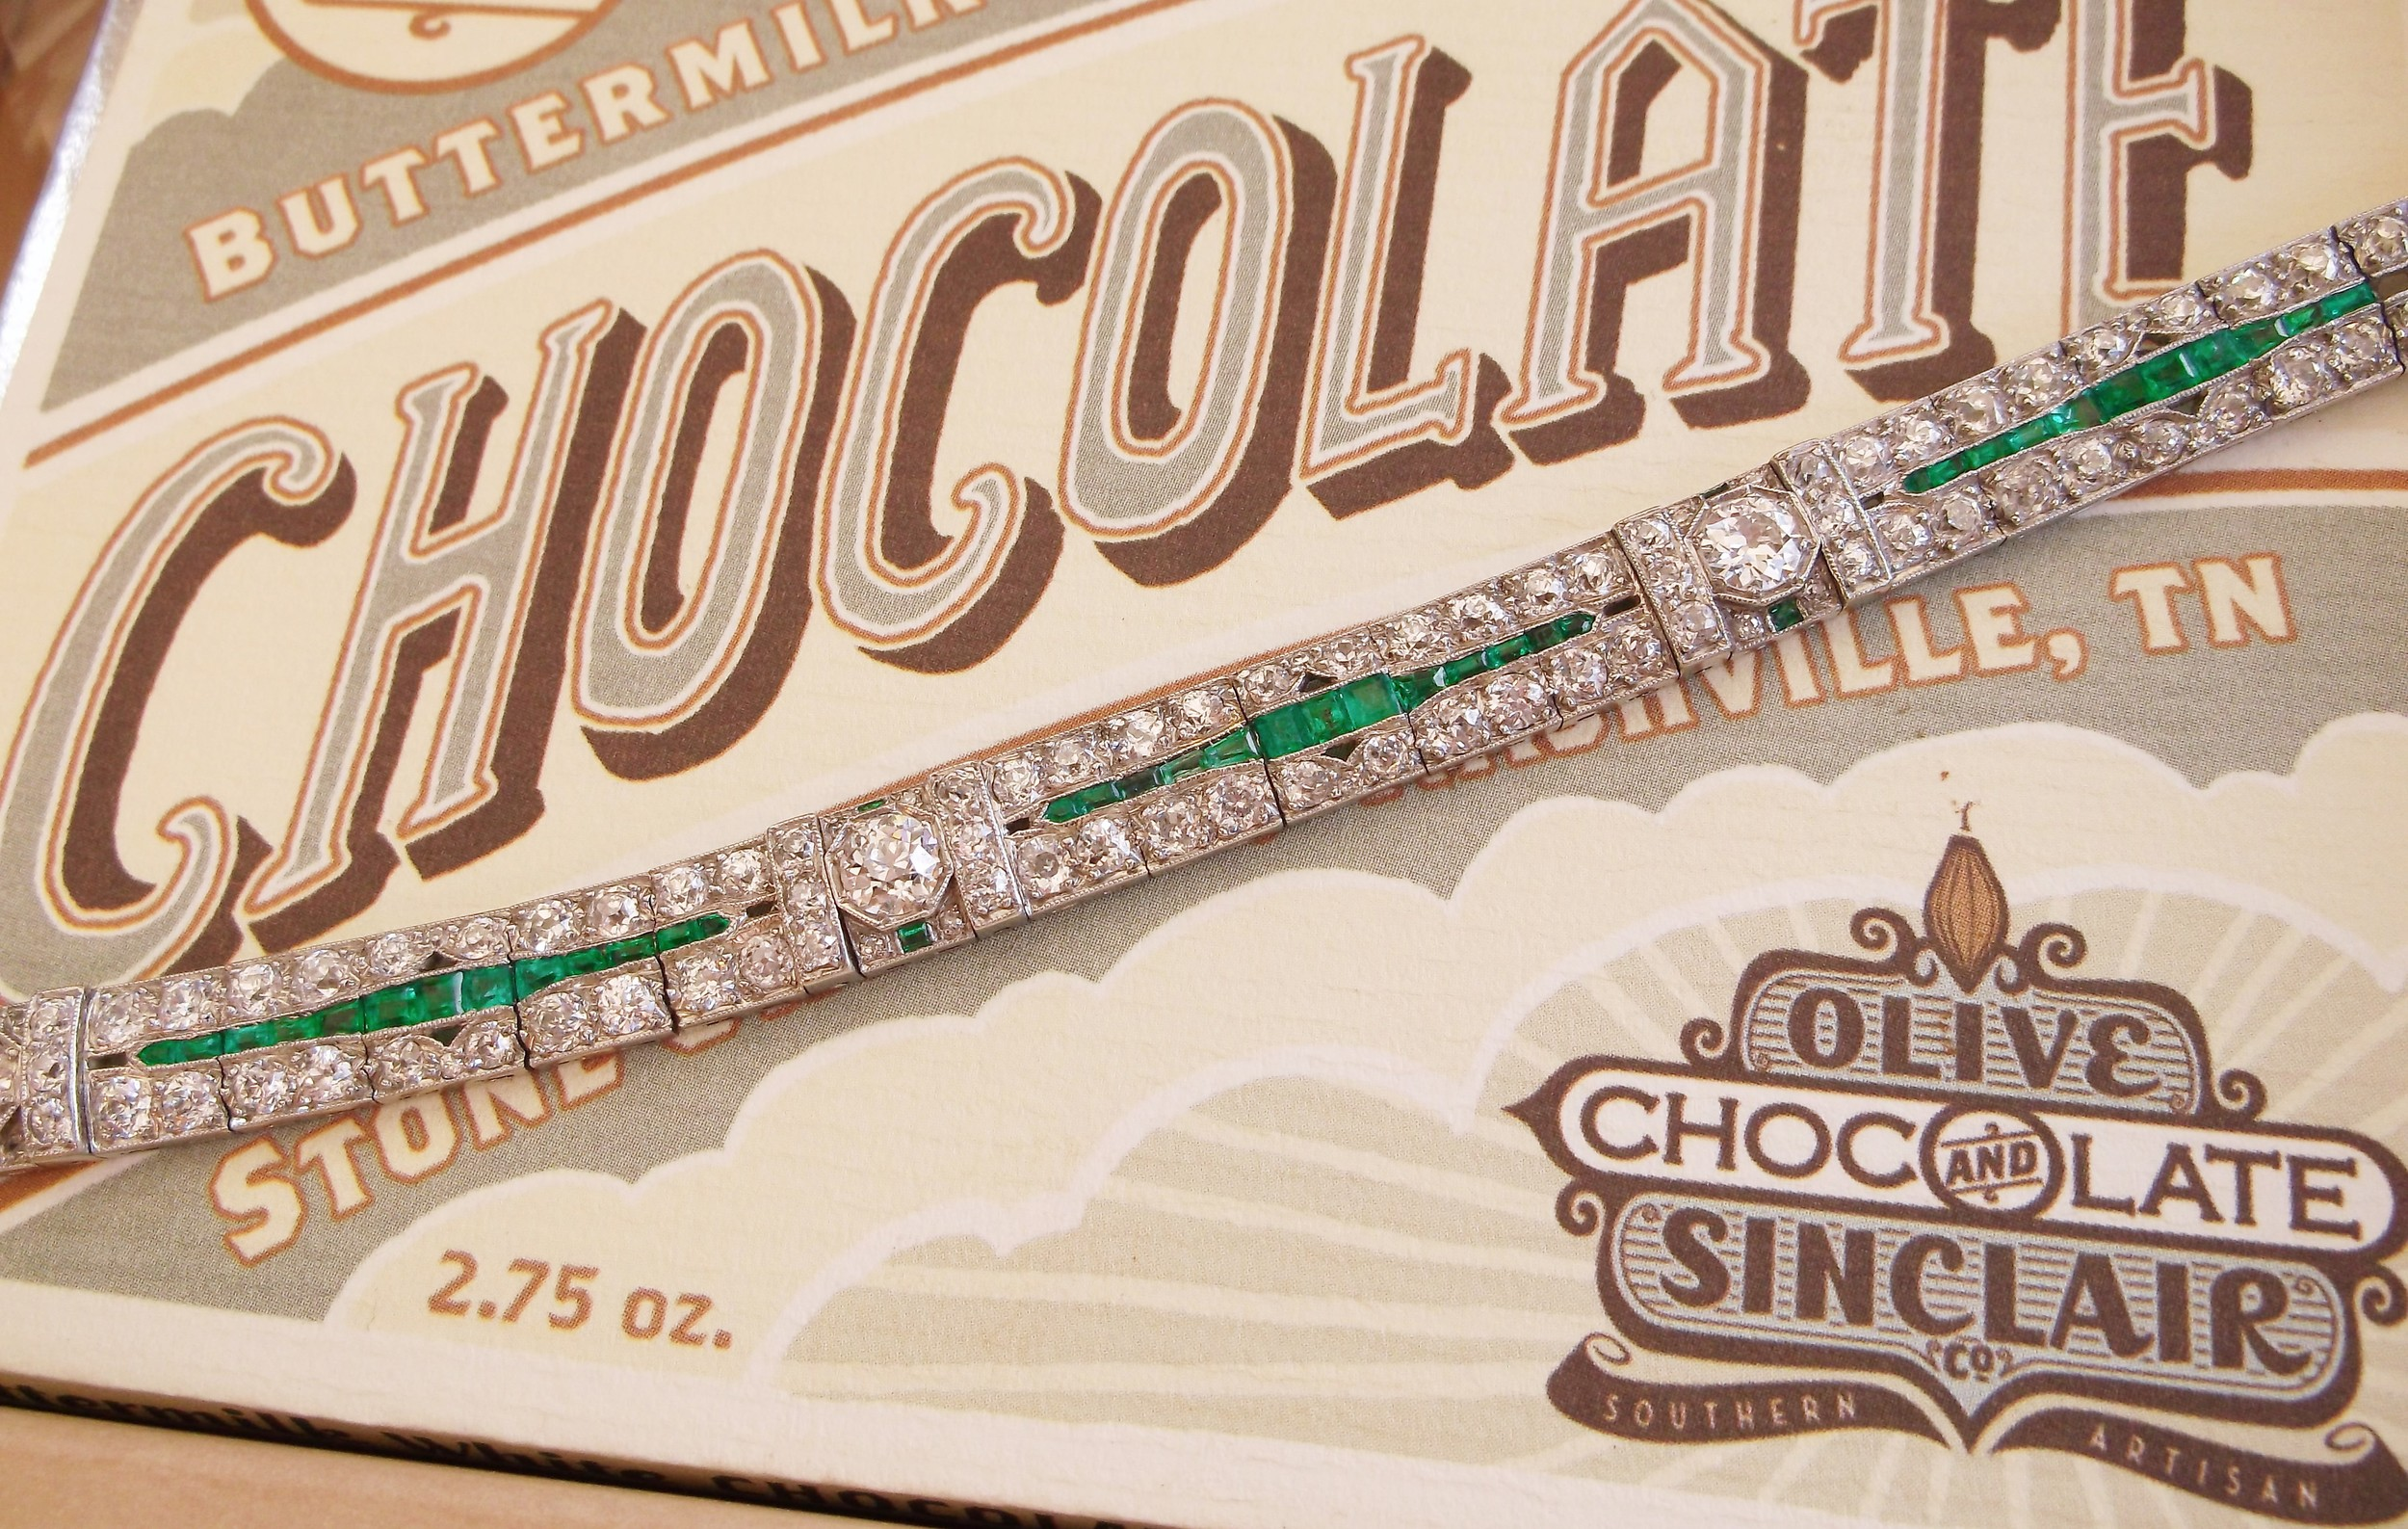 Gorgeous 1920's diamond, emerald and platinum bracelet that features over 11.00 carats total weight of Old European cut diamonds! Pictured on a delicious chocolate bar from  Olive and Sinclair Chocolate Co.  (Whom we've heard may soon be opening on Main Street in Downtown Franklin!)